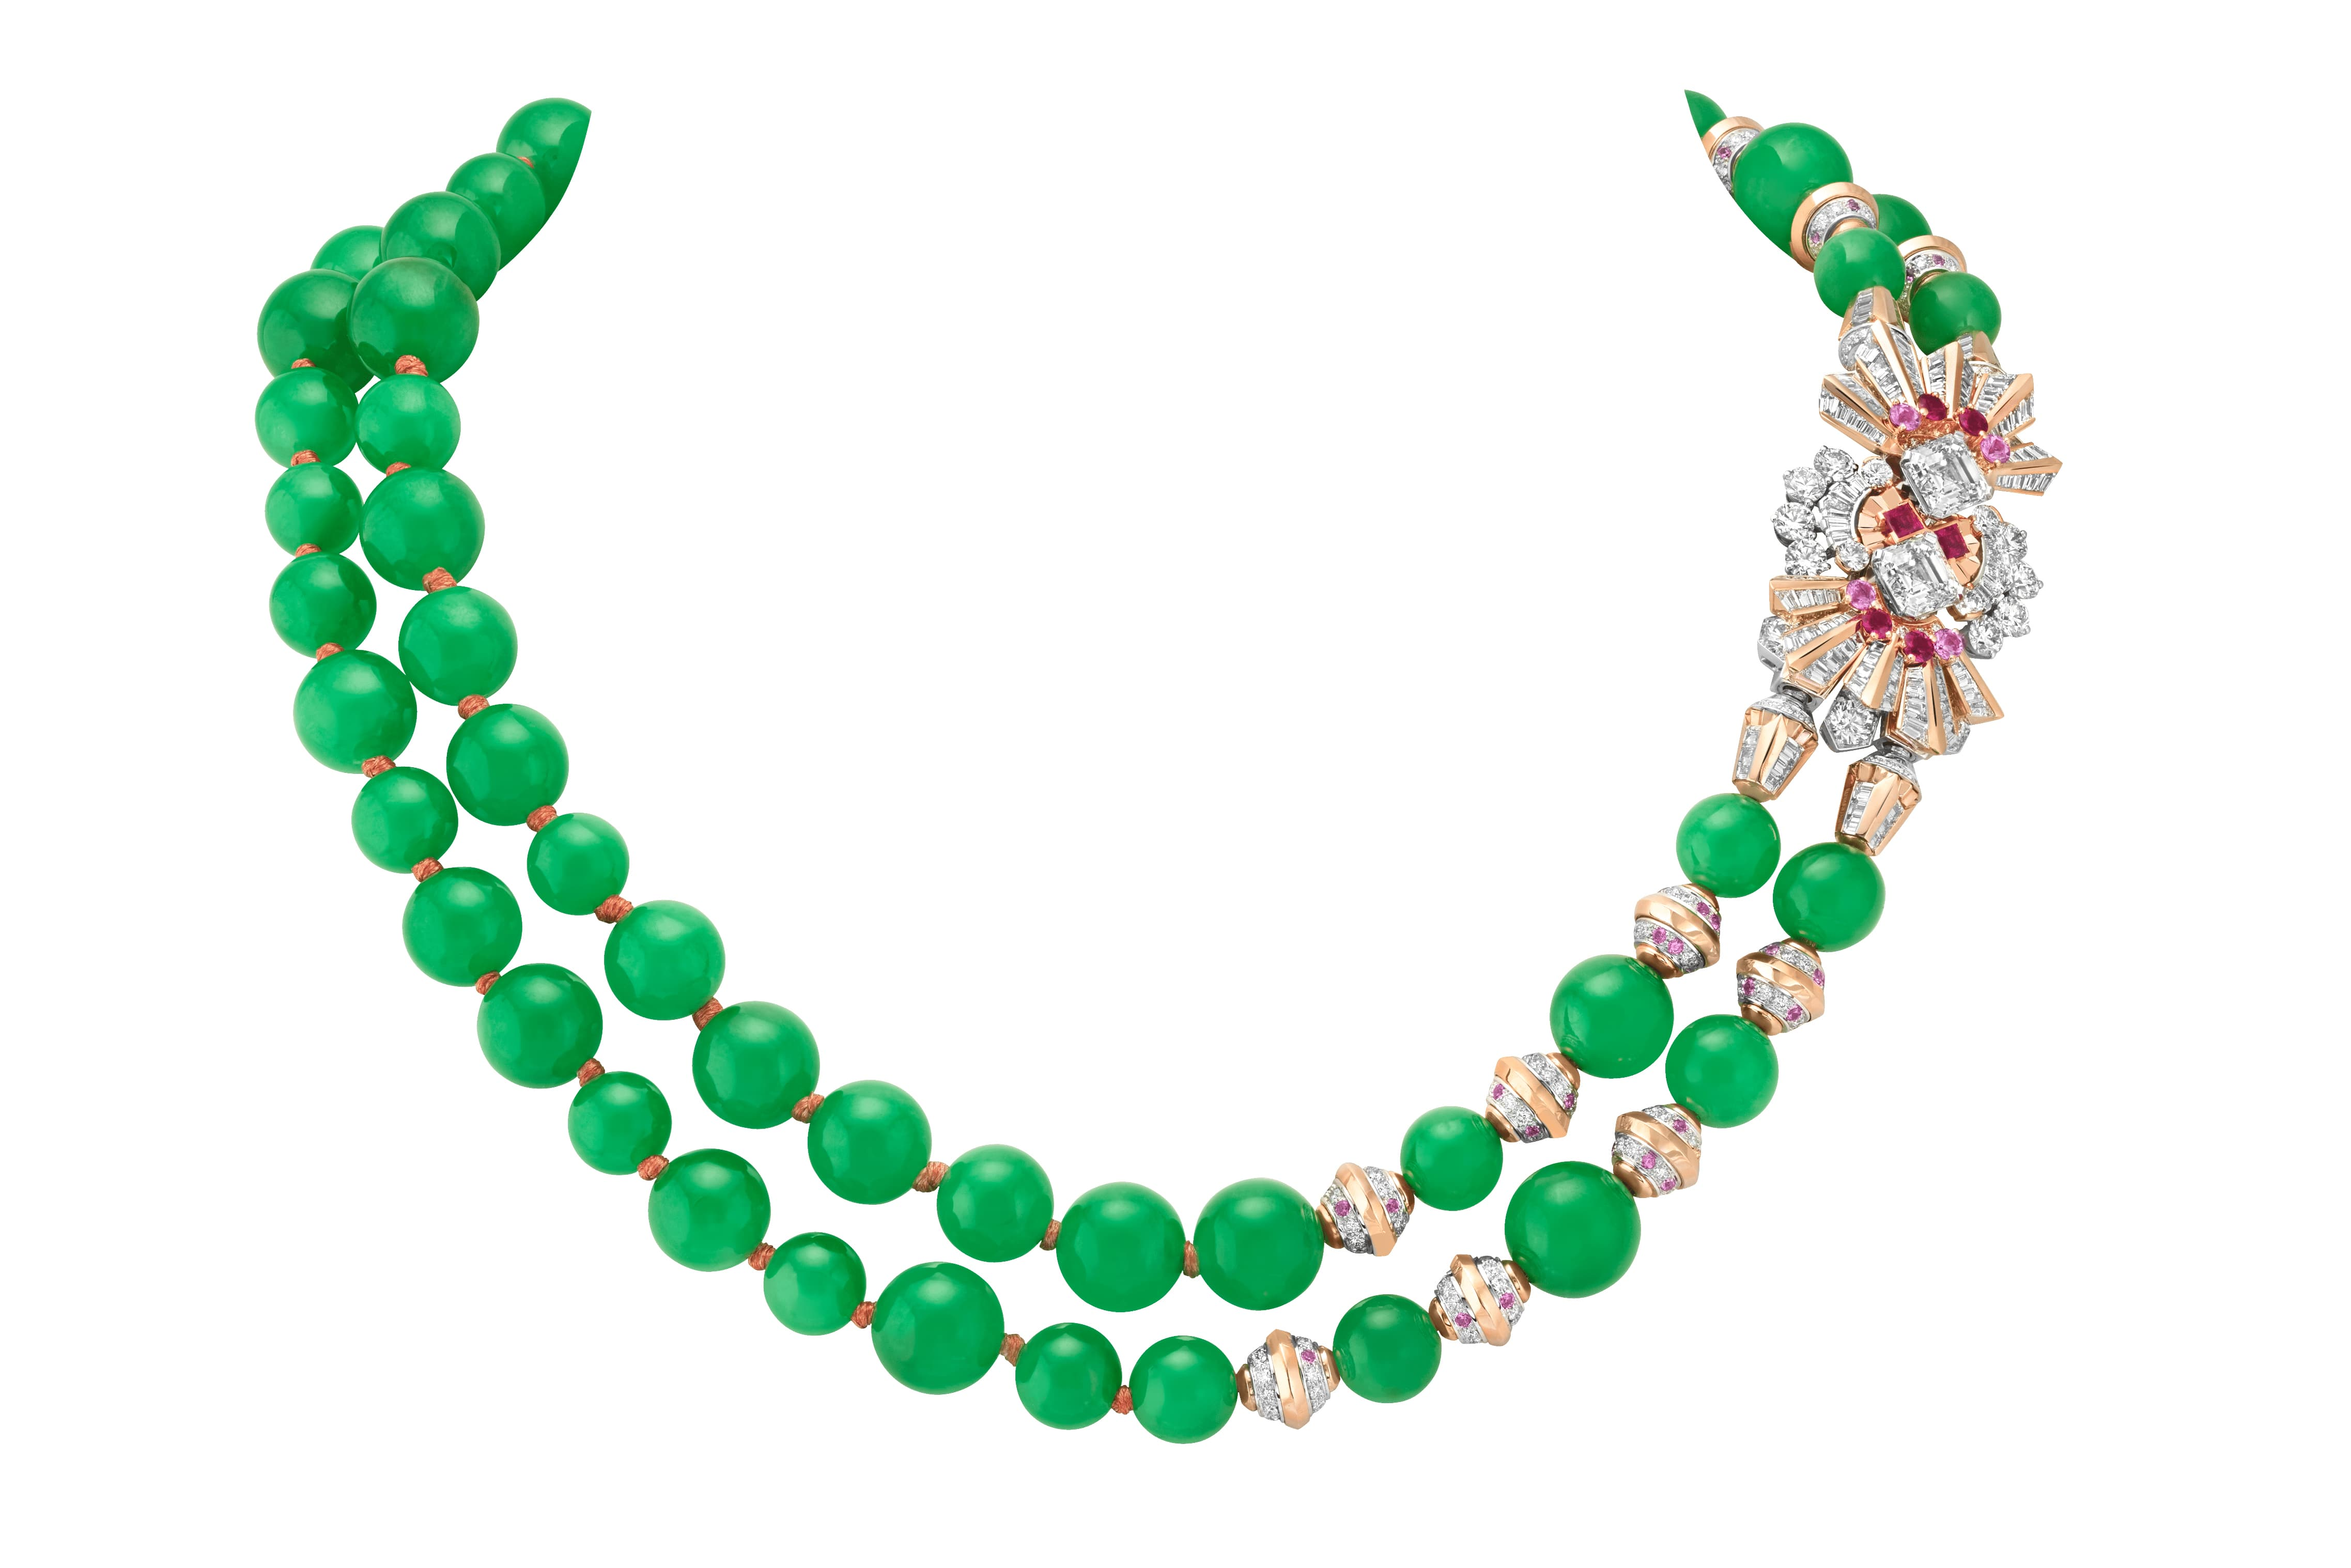 Van Cleef & Arpels Étoile Binaire transformable necklace with 63 jade beads, two asscher cut diamonds, pink sapphires, rubies and further diamonds